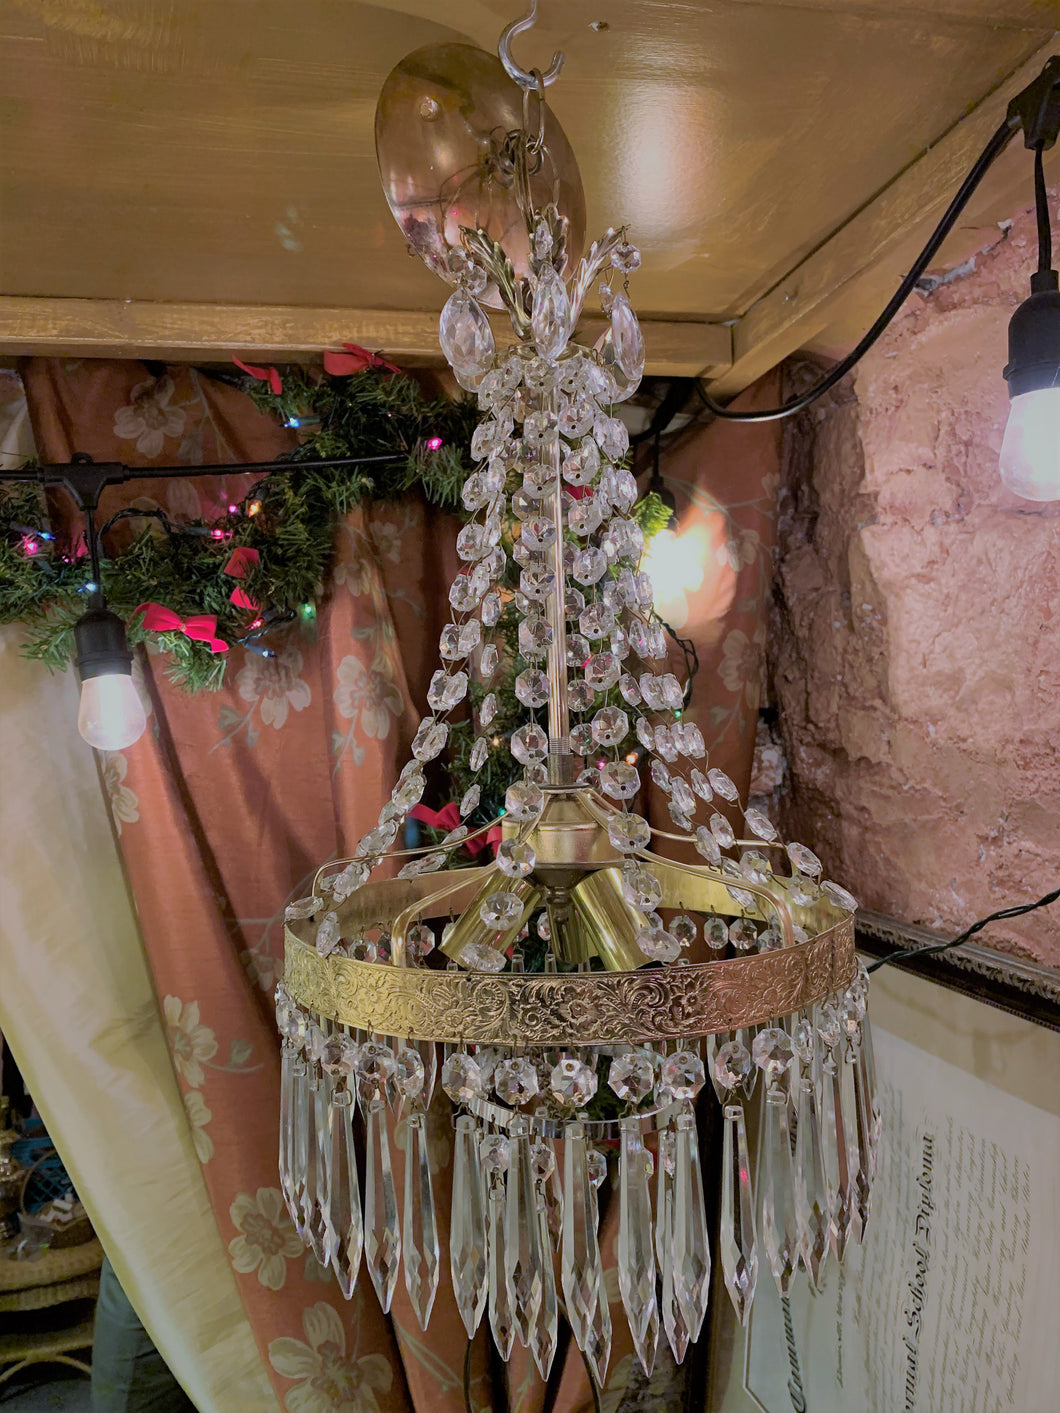 French Empire Style with Waterfall Crystal Cascade and 2 Tier Wedding Cake Crystal Bottom